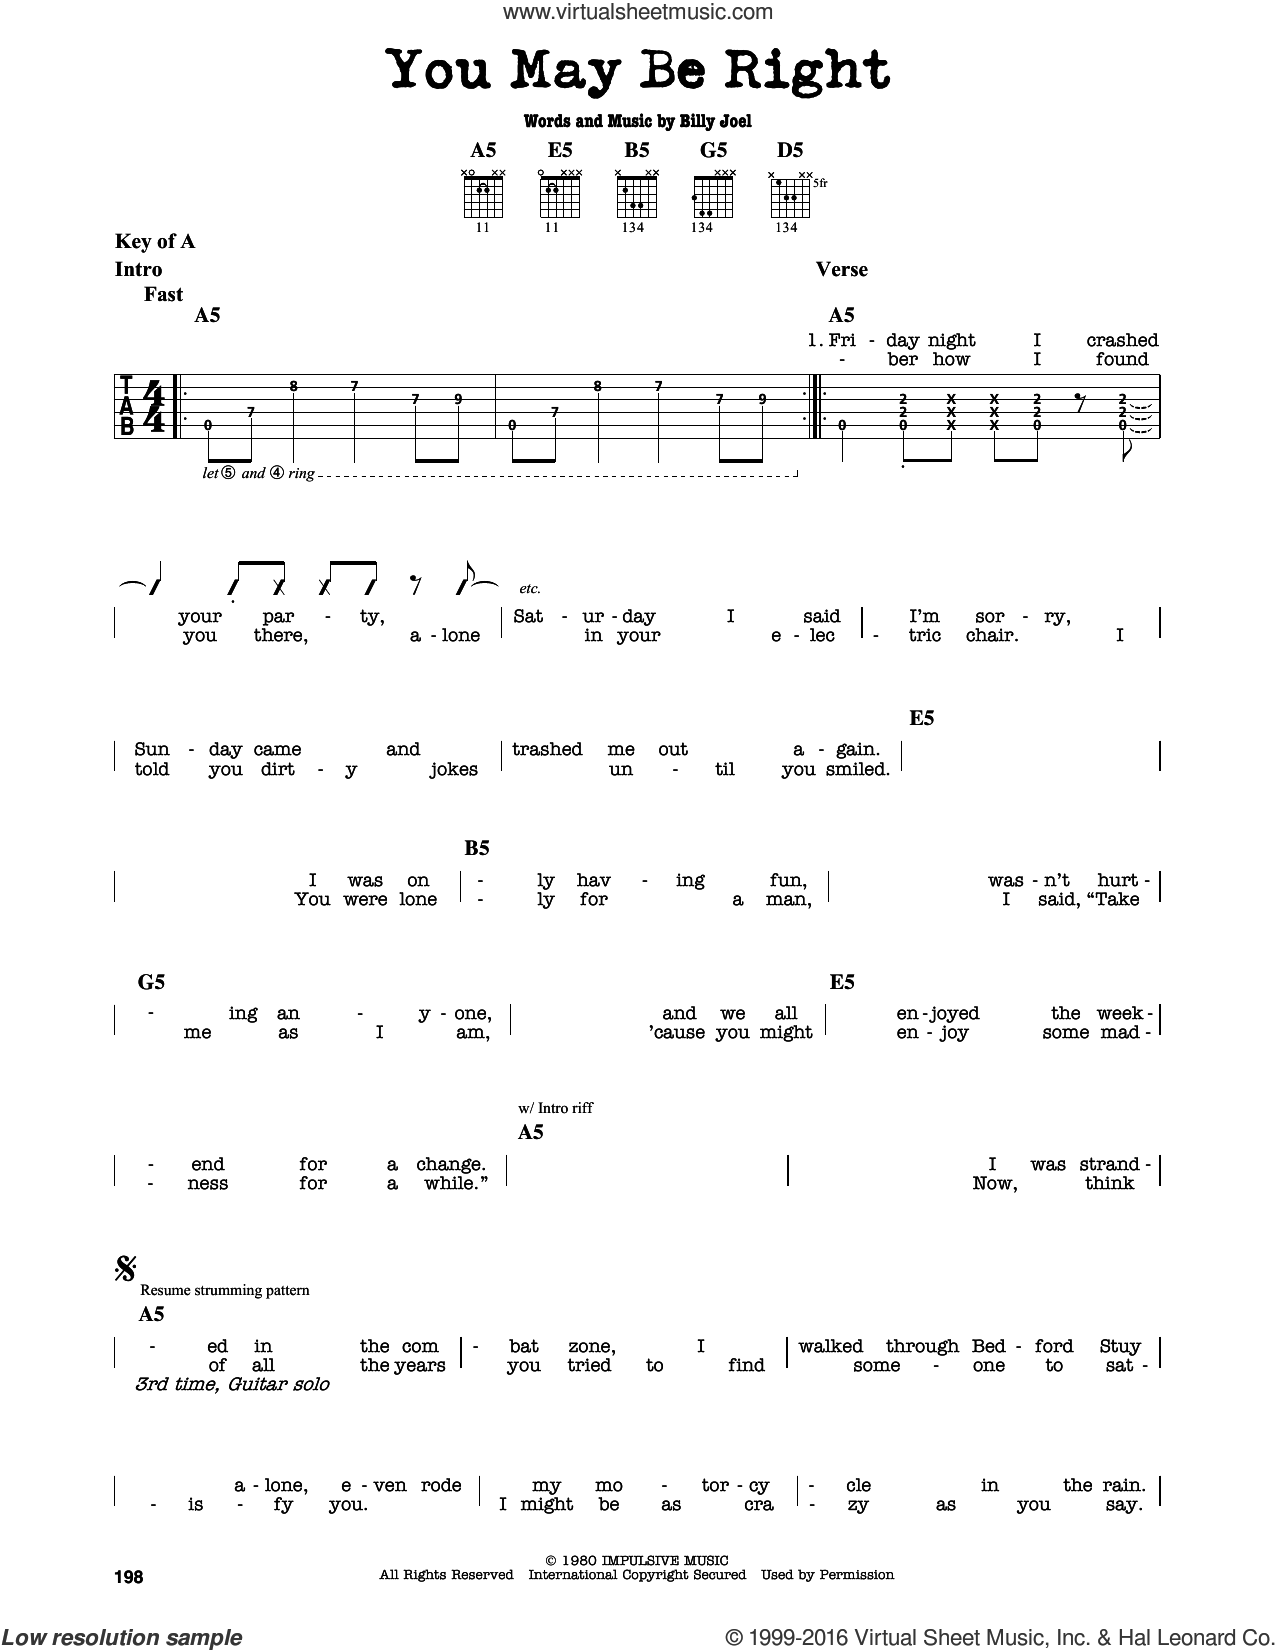 You May Be Right sheet music for guitar solo (lead sheet) by Billy Joel. Score Image Preview.